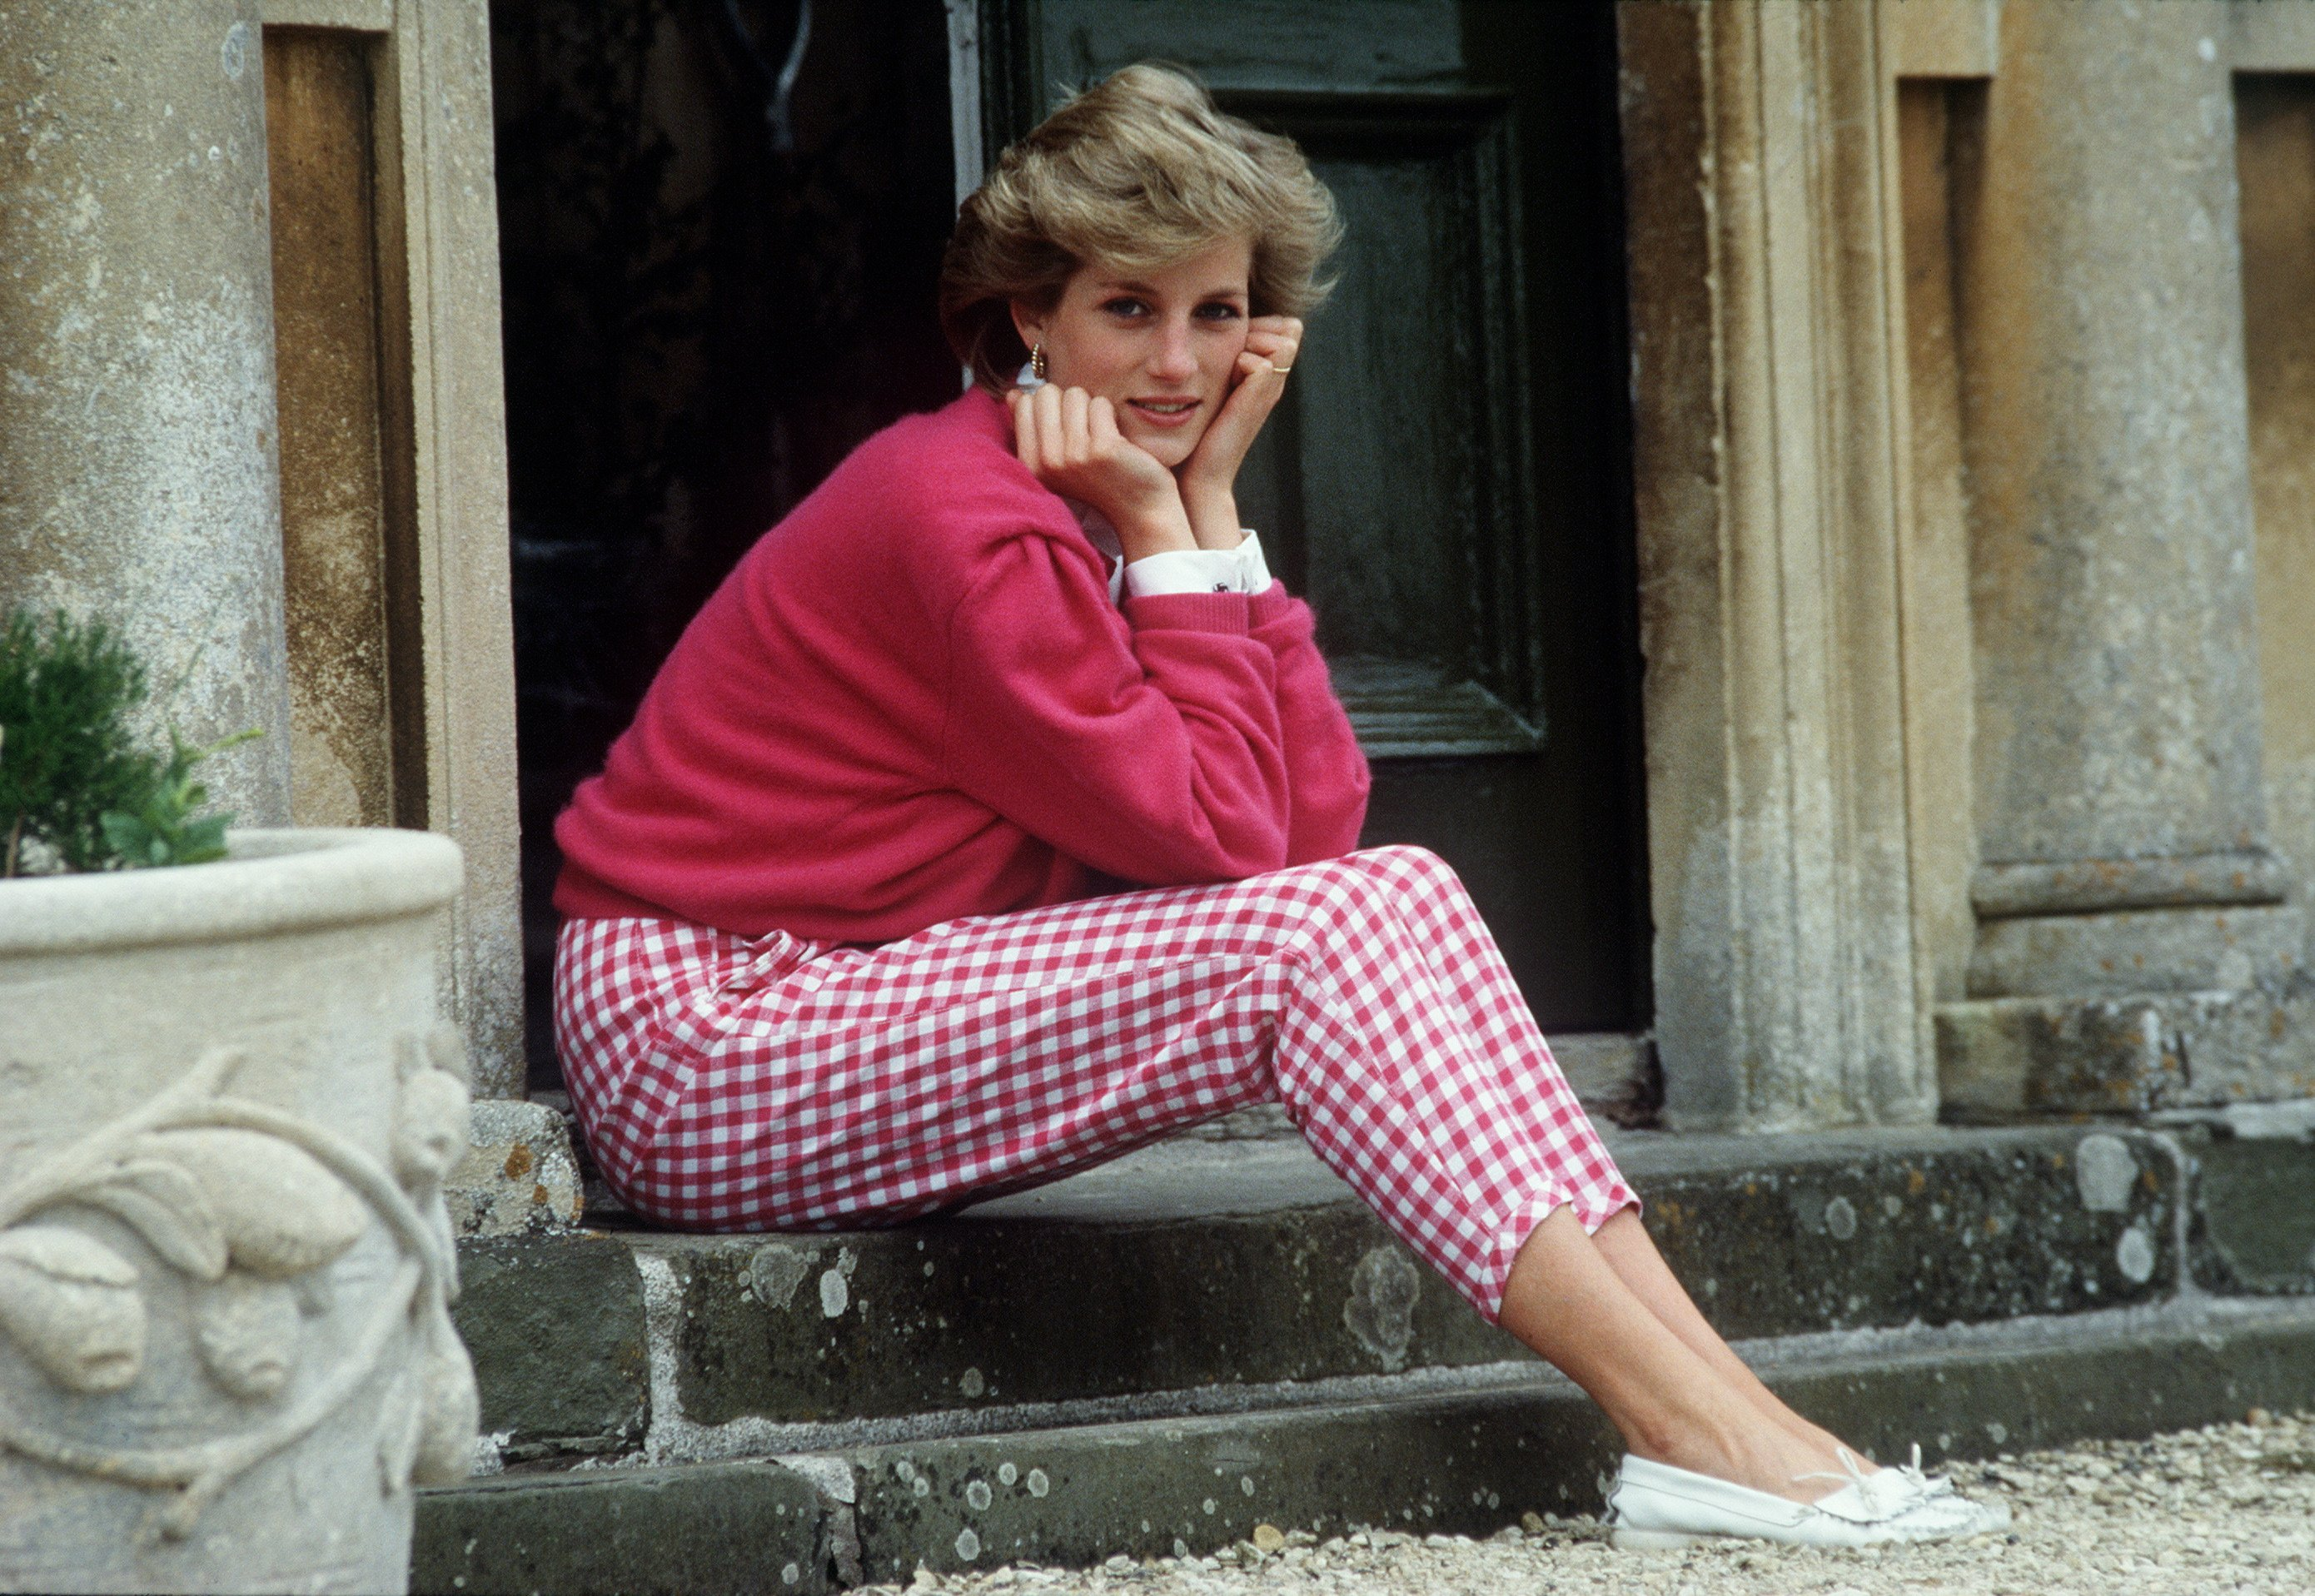 Princess Diana poses with her head on her hands at her Highgrove, Gloucestershire home in Tetbury, UK on July 18, 1986   Photo: Getty Images